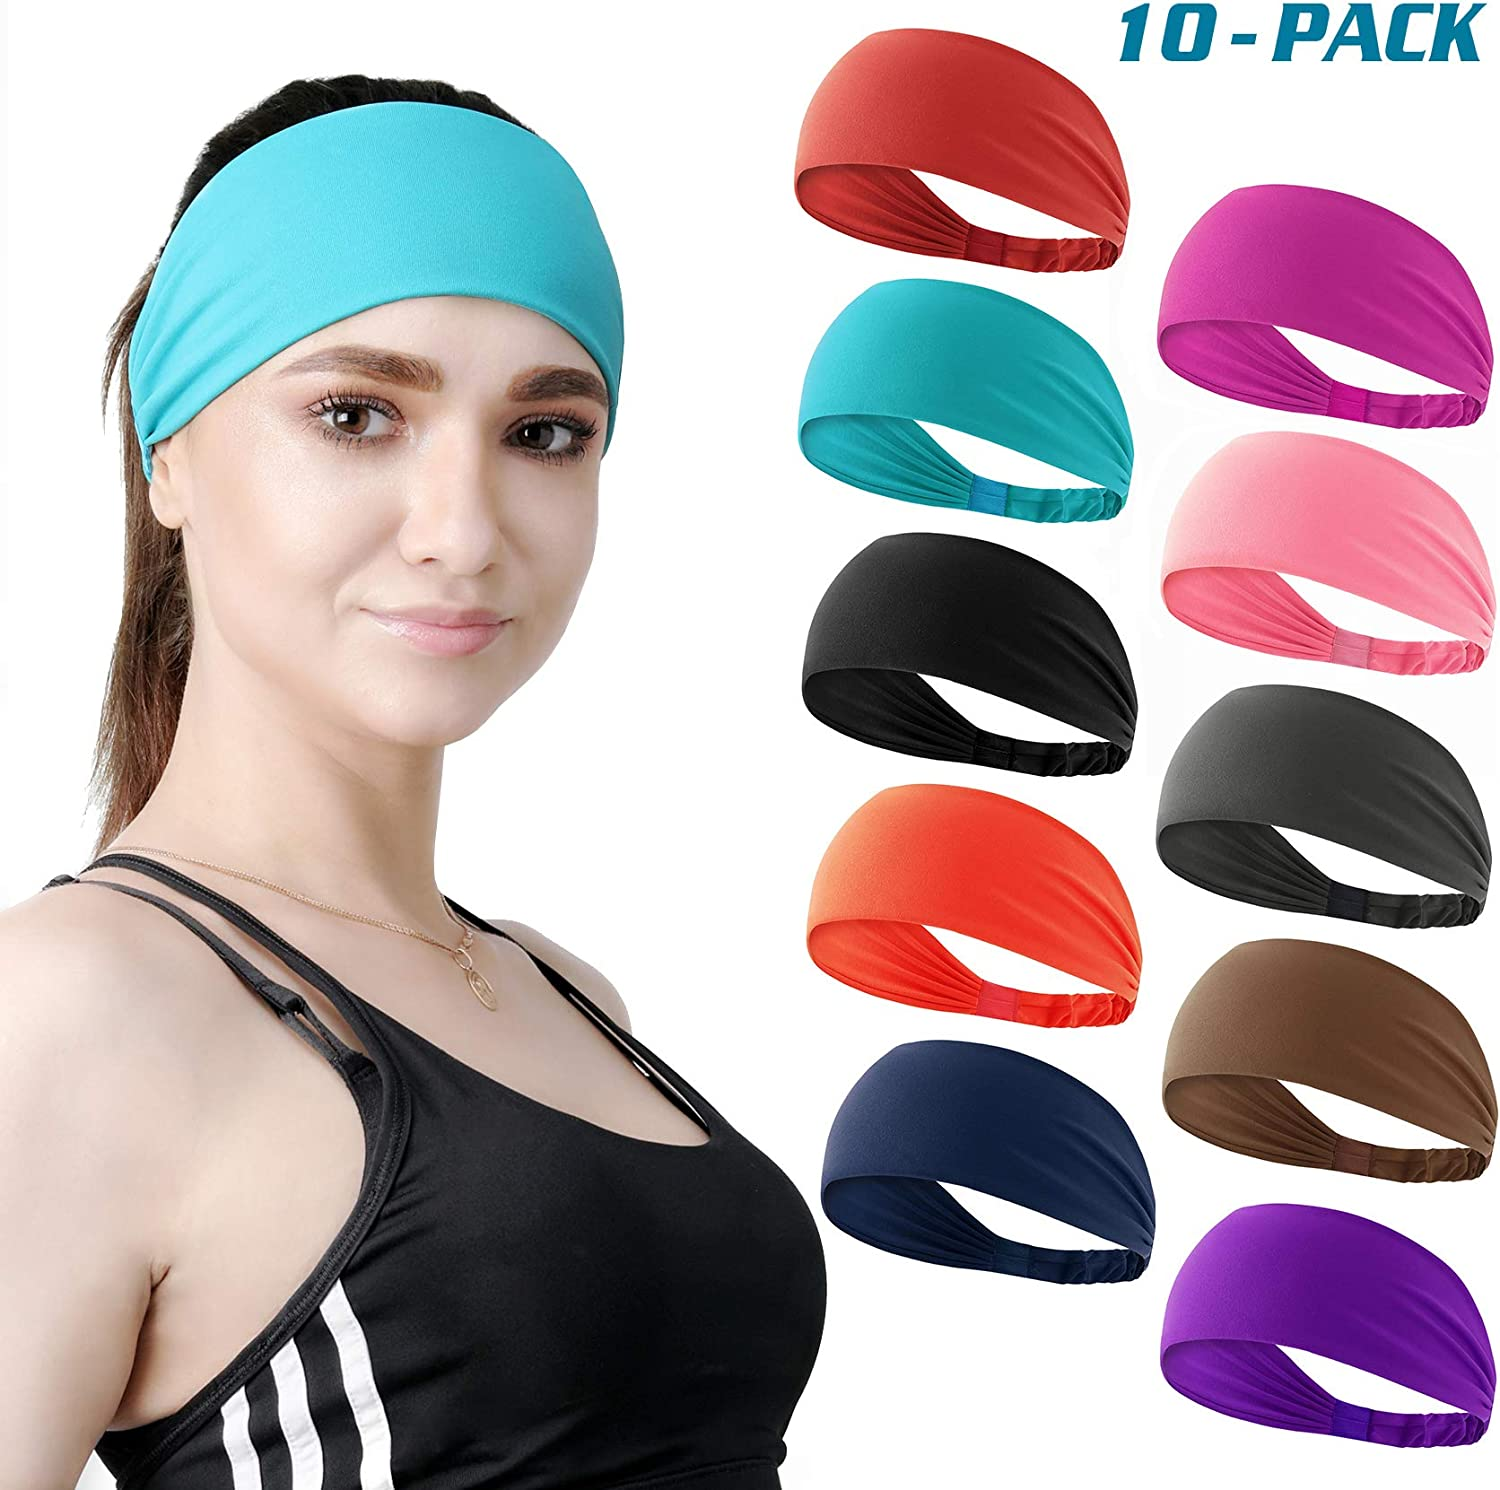 DASUTA Set of 10 Women's Workout Headband Non Slip Lightweight Multi Headbands Headscarf for Yoga Running Sports Travel Athletic Fitness Elastic Wicking fits All Women & Men